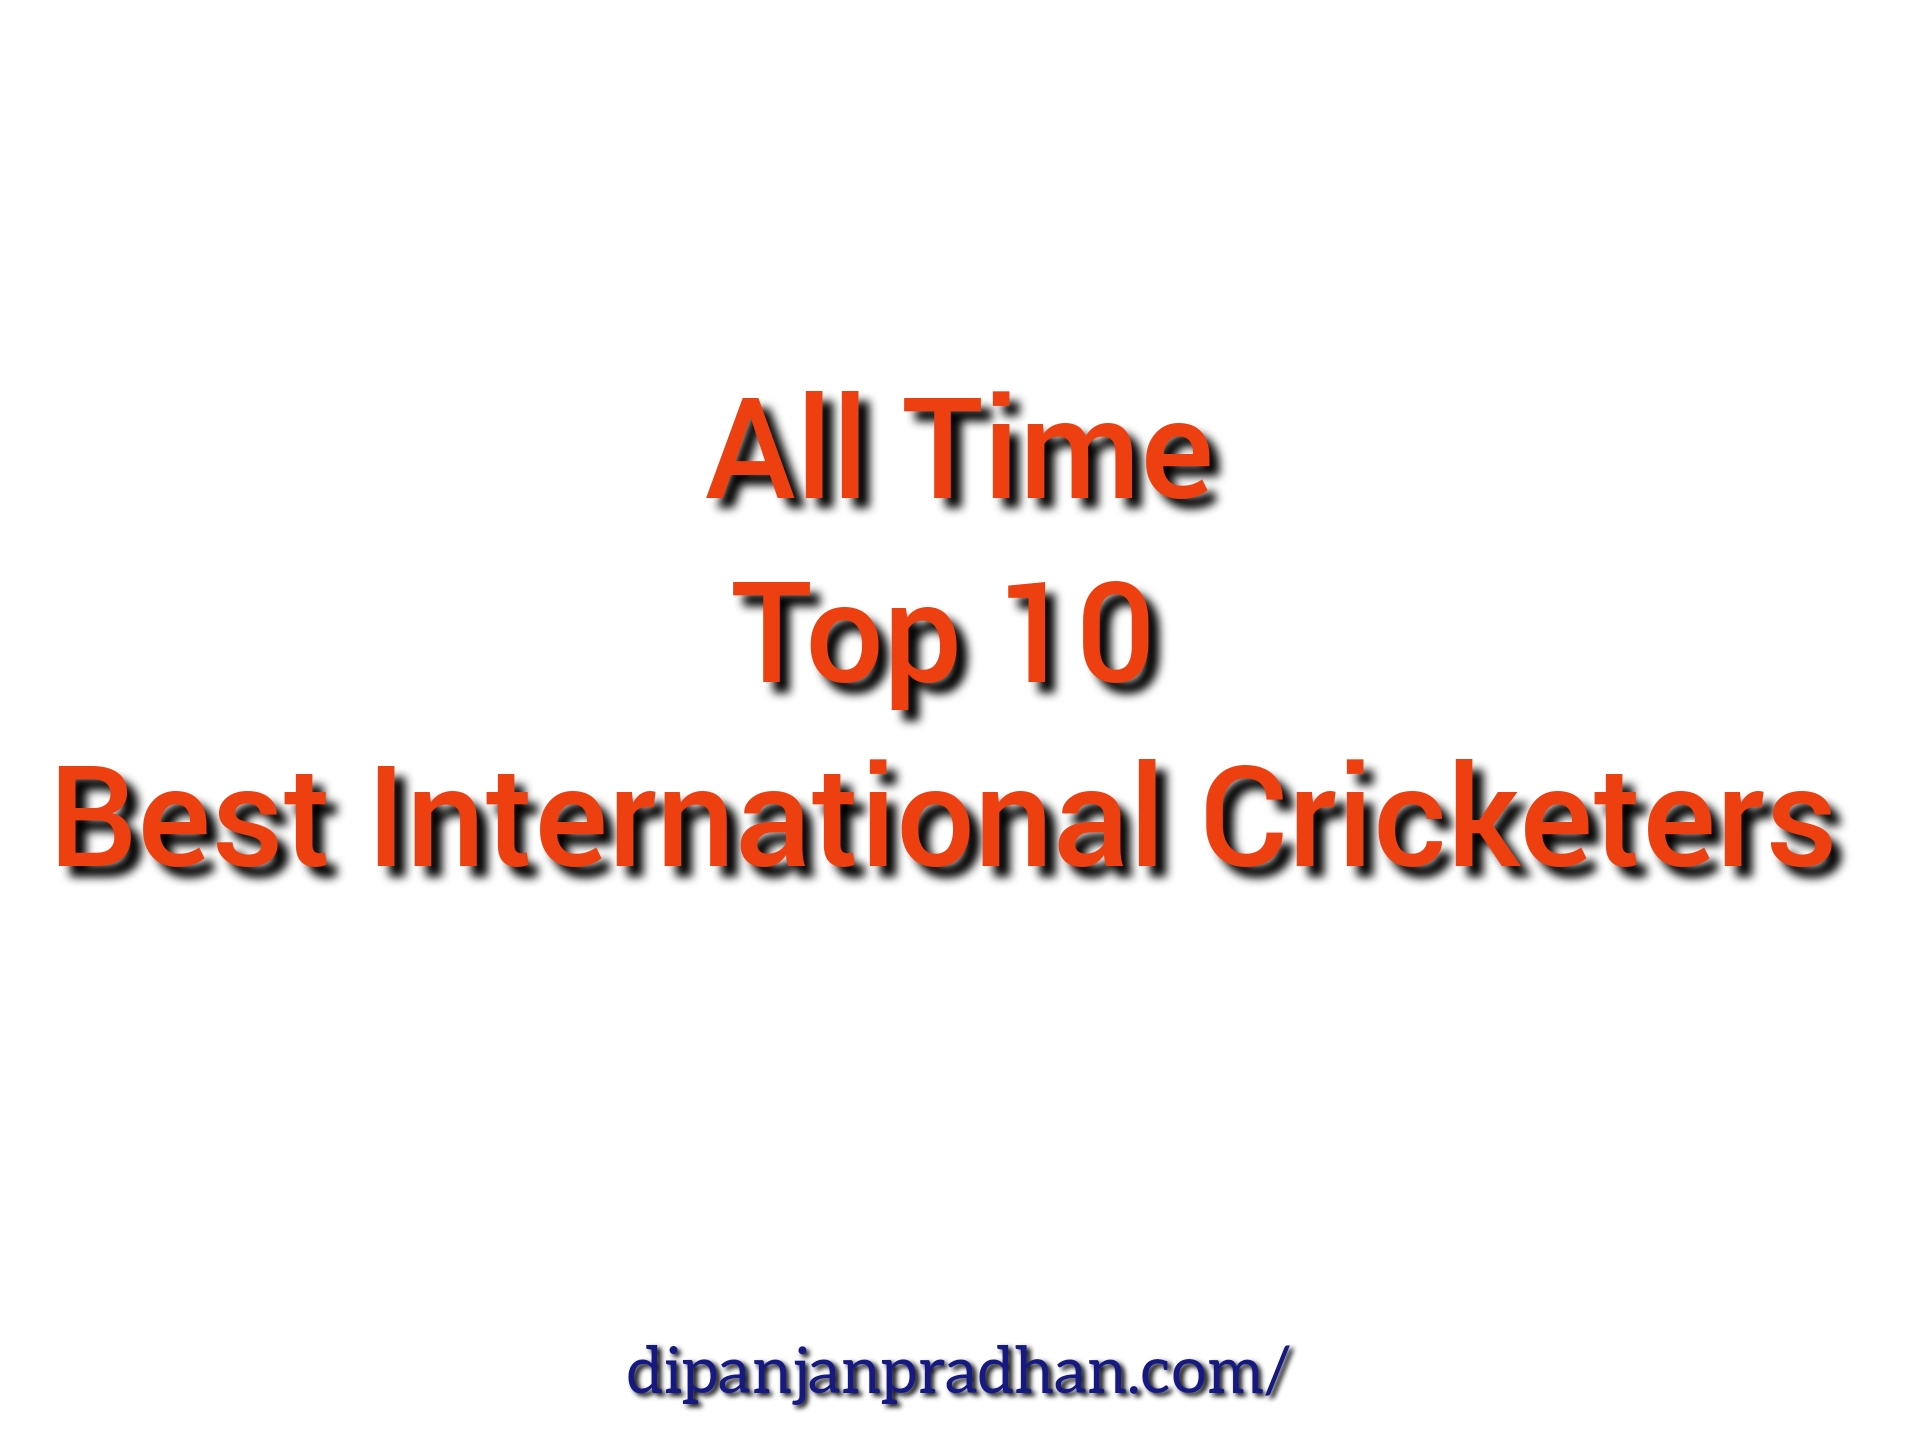 Top 10 Best International Cricketers in The World of All Time